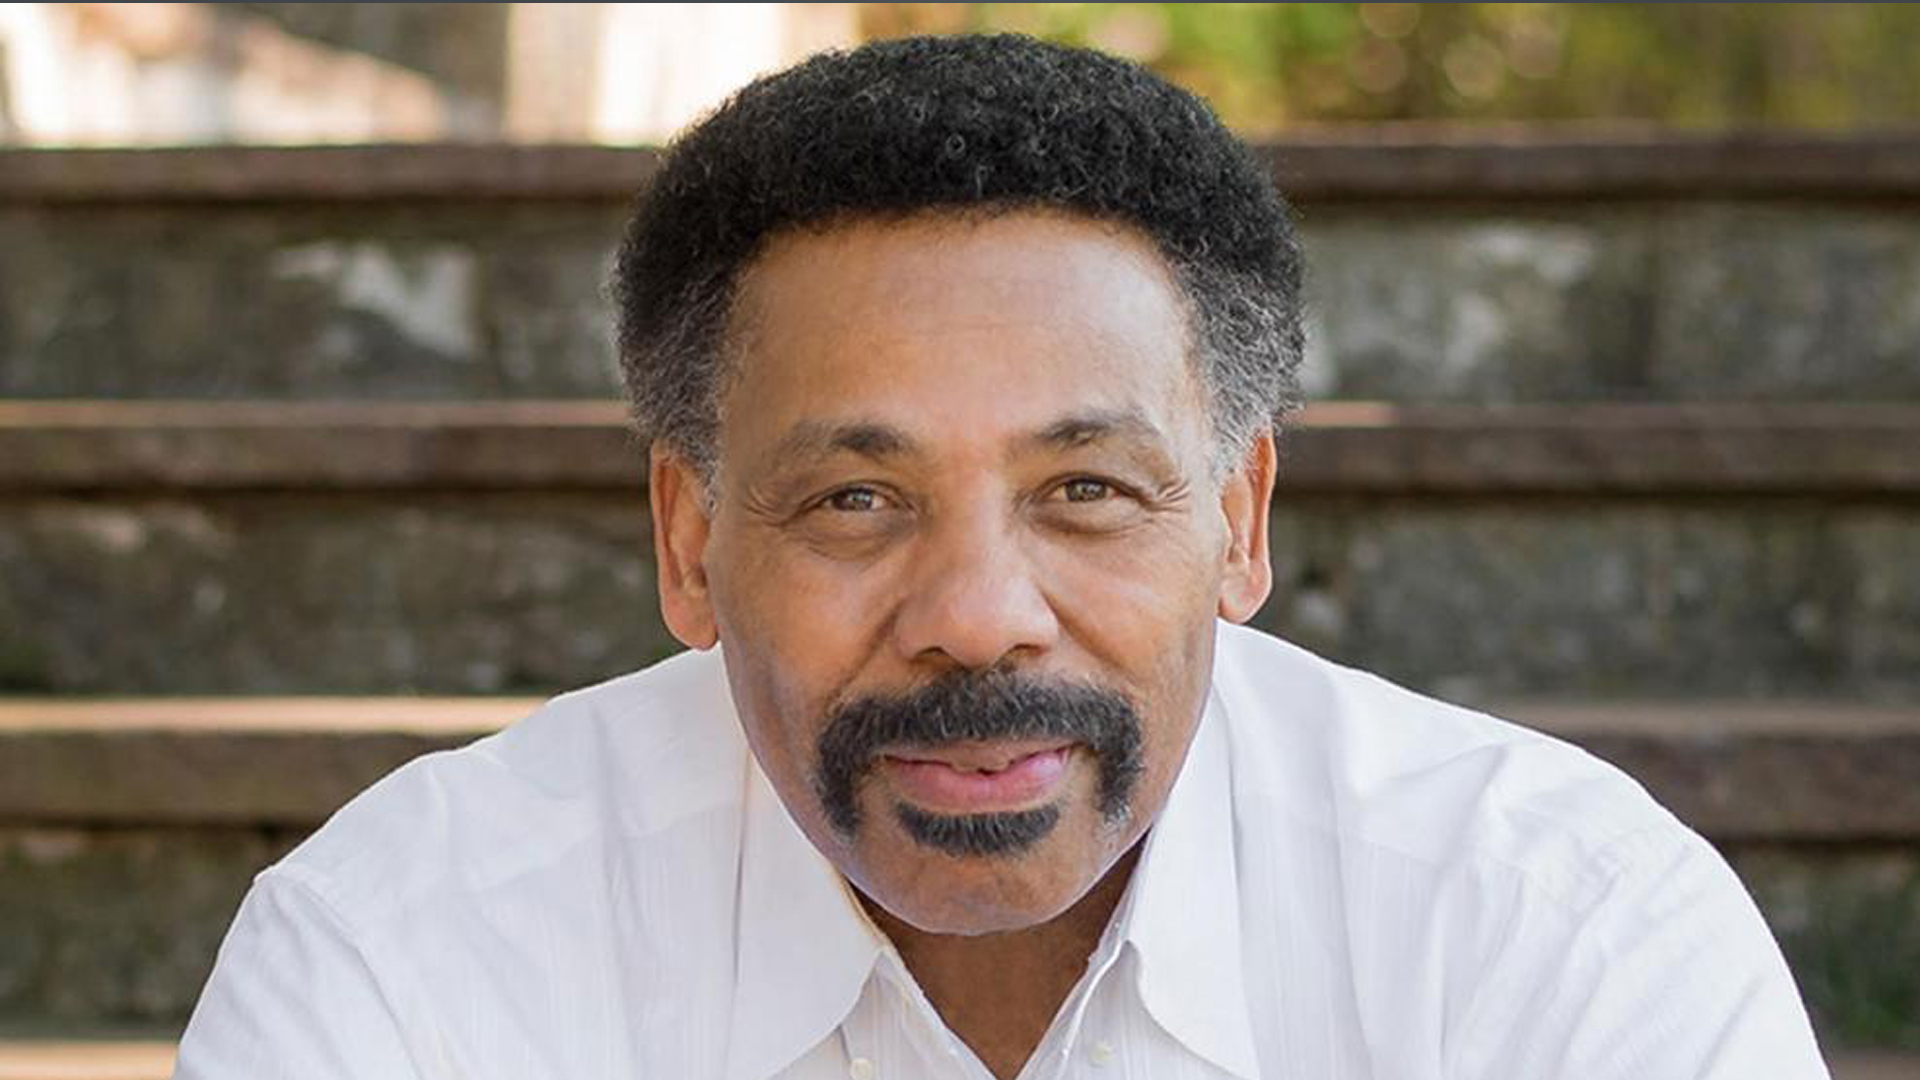 The Legacy of a Man | Tony Evans